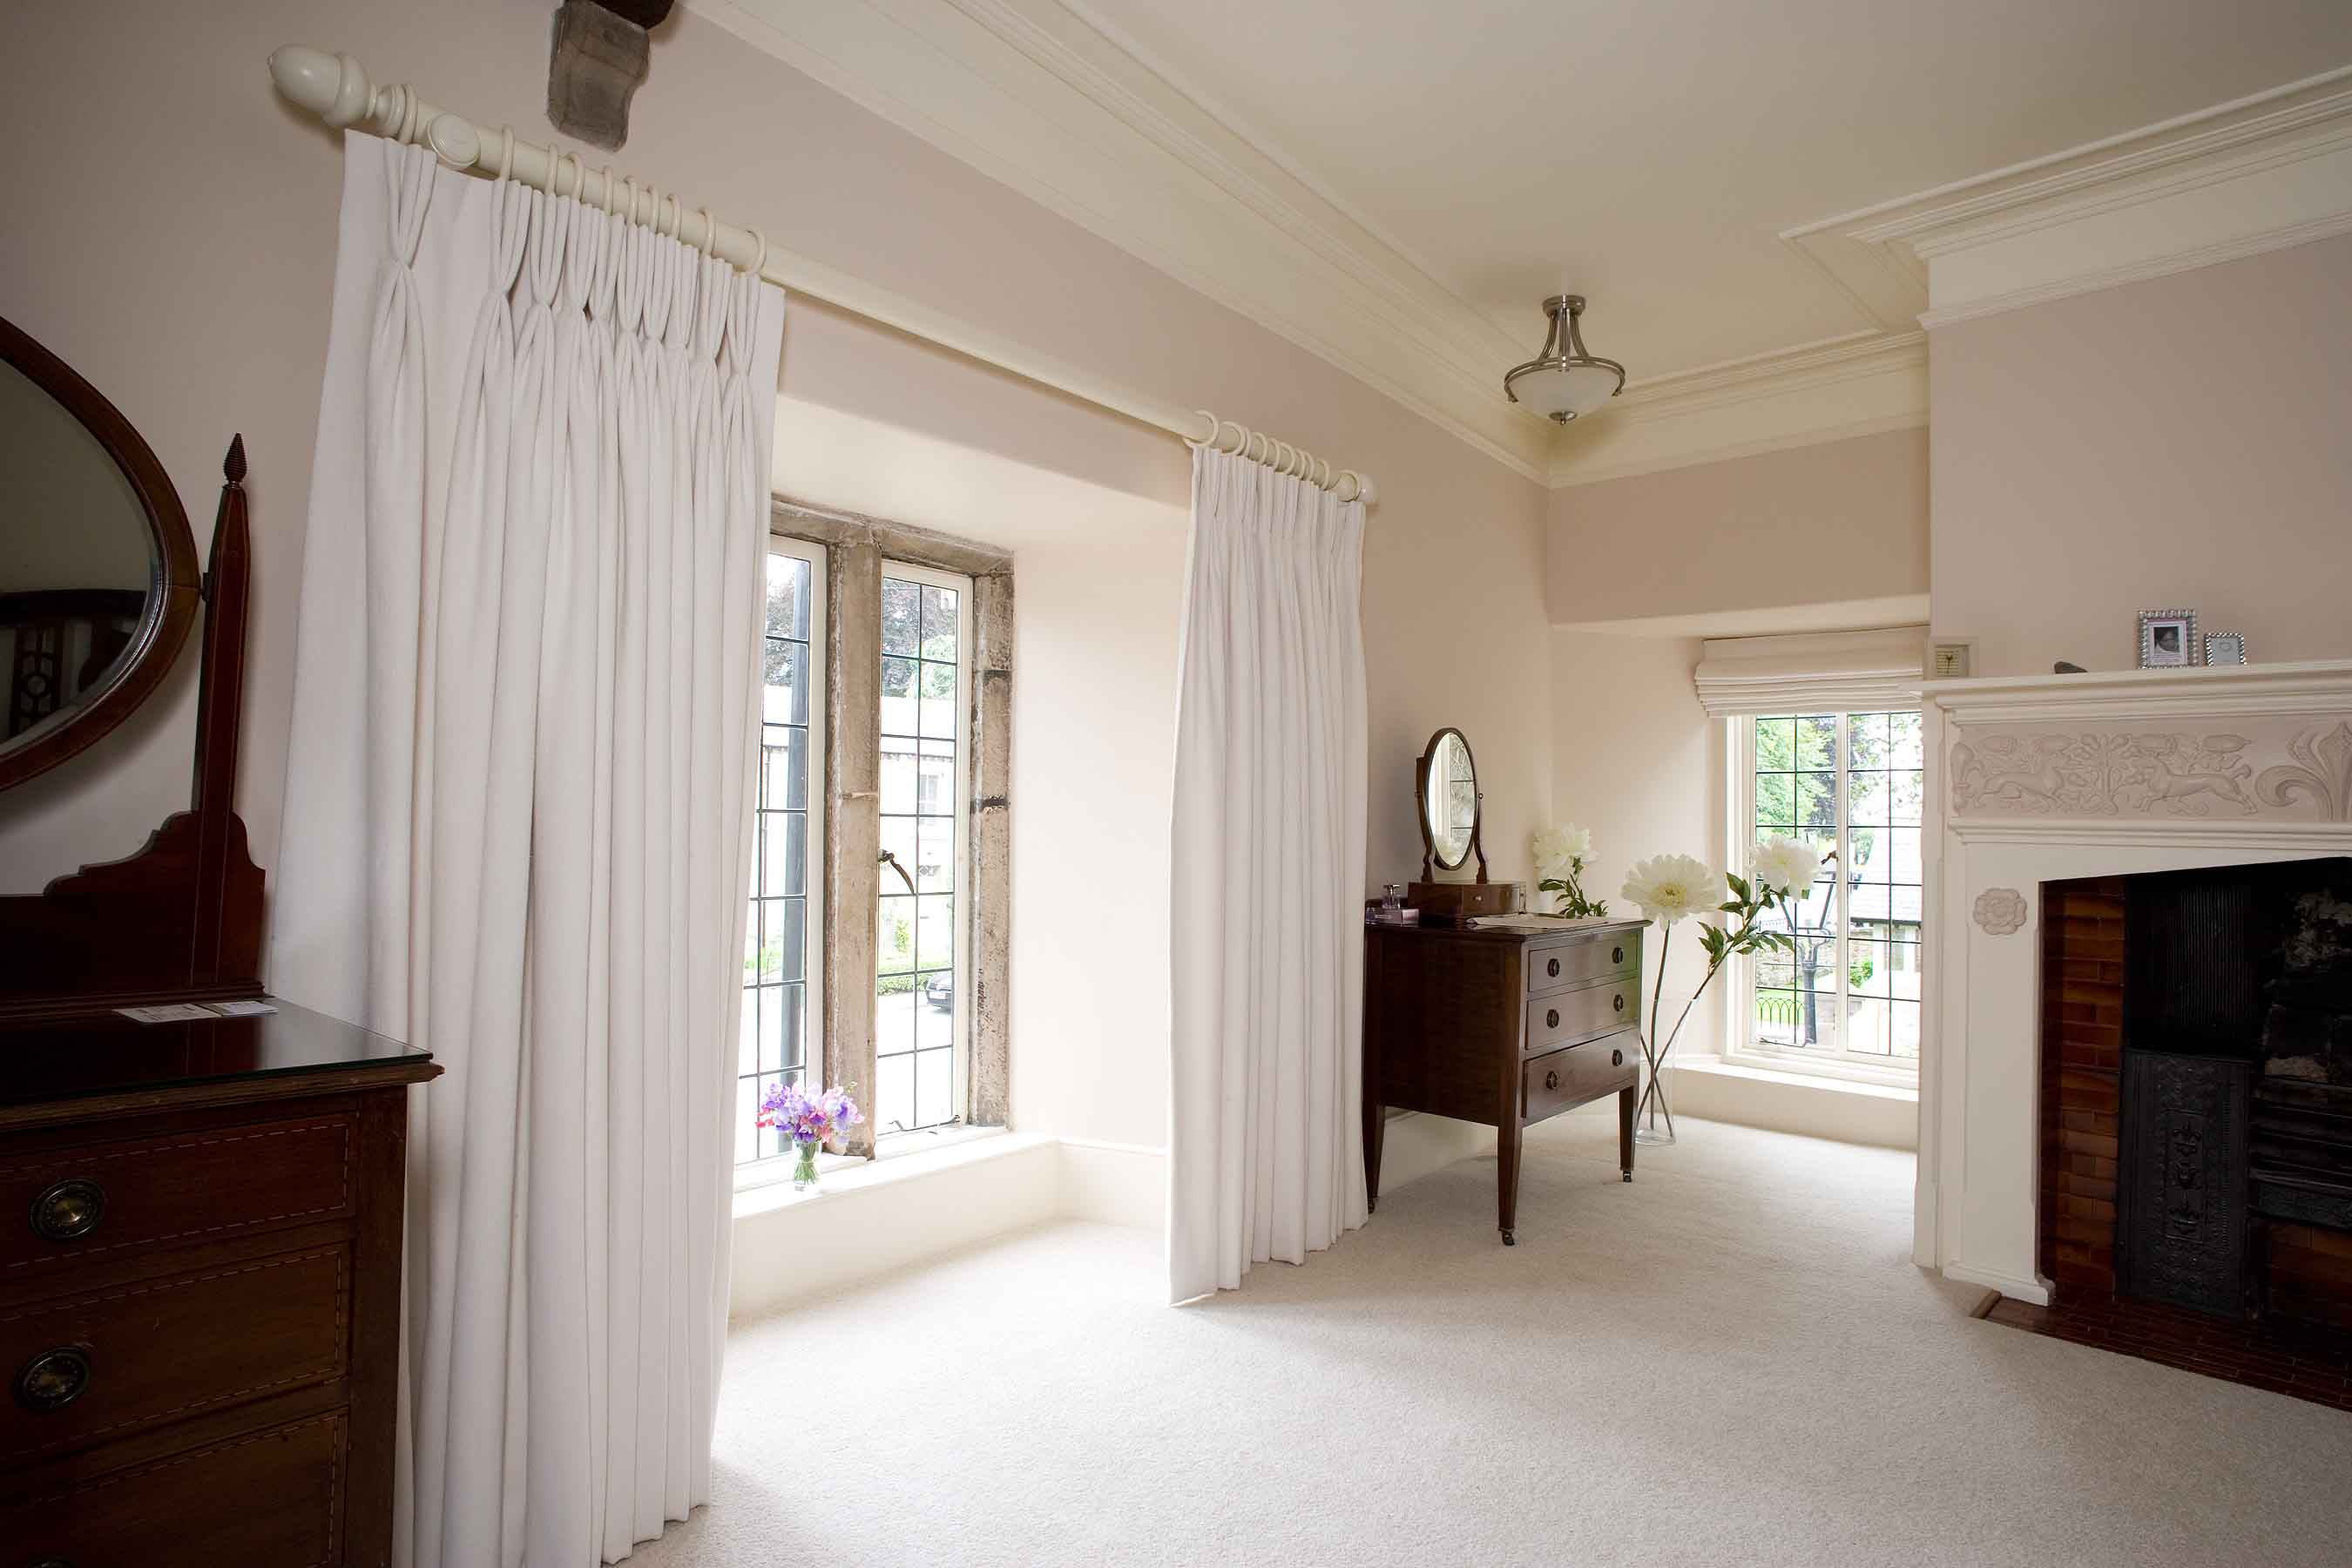 Made to measure curtains with triple pleats